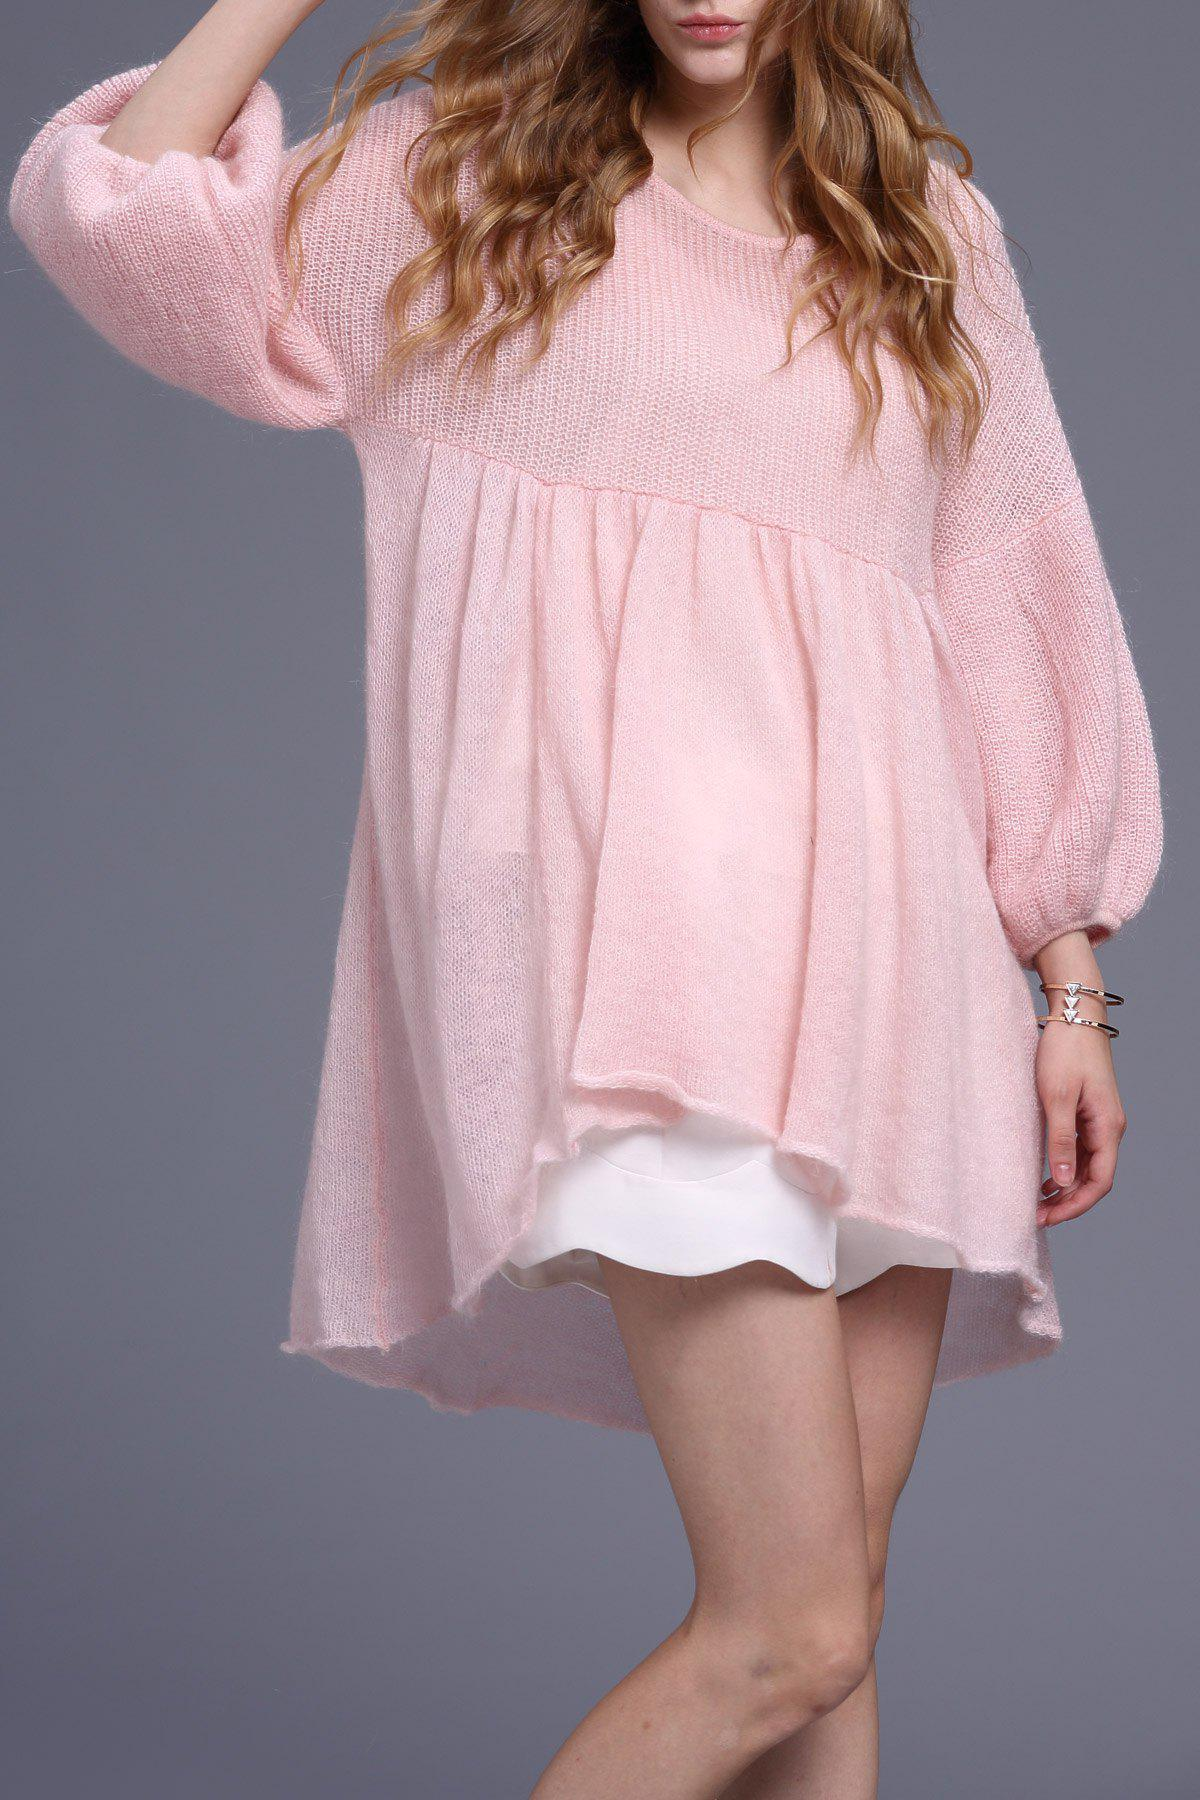 New Waisted High Low Sweater Dress